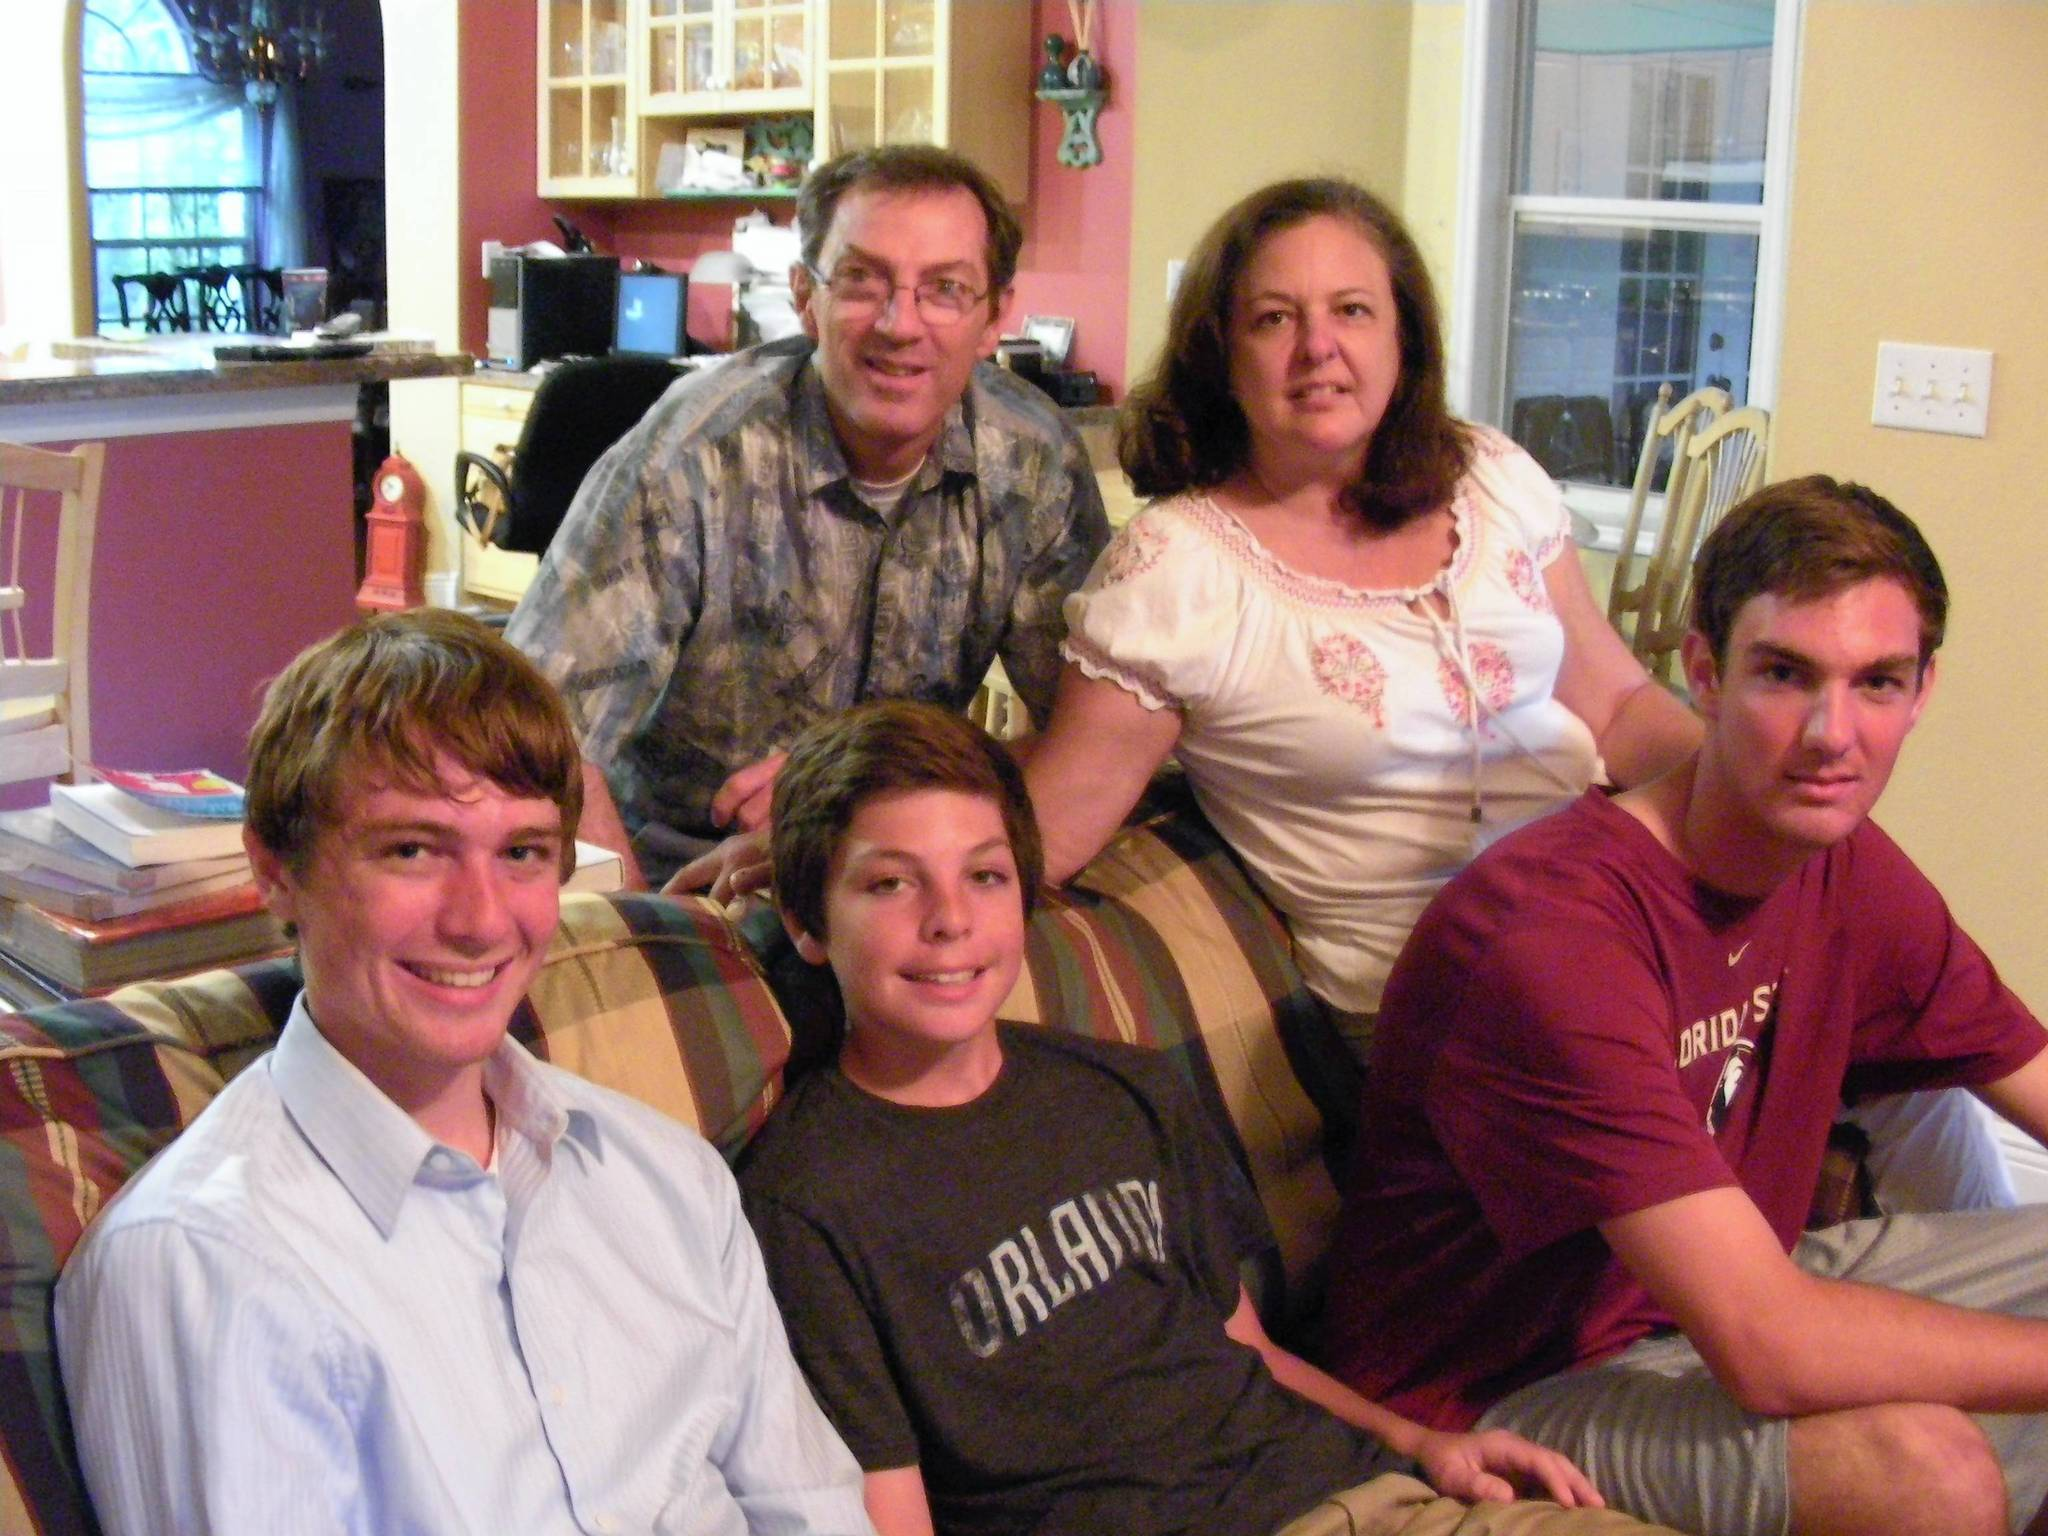 Bill and Susan Fay had hoped to get their children through college debt-free, but rising costs and state budget cuts have made that impossible. Shown here with them (left to right) are Dylan, a senior at University of Florida, Luke, a sophomore at Bishop Moore High School, and Max, a freshman at Florida State University.